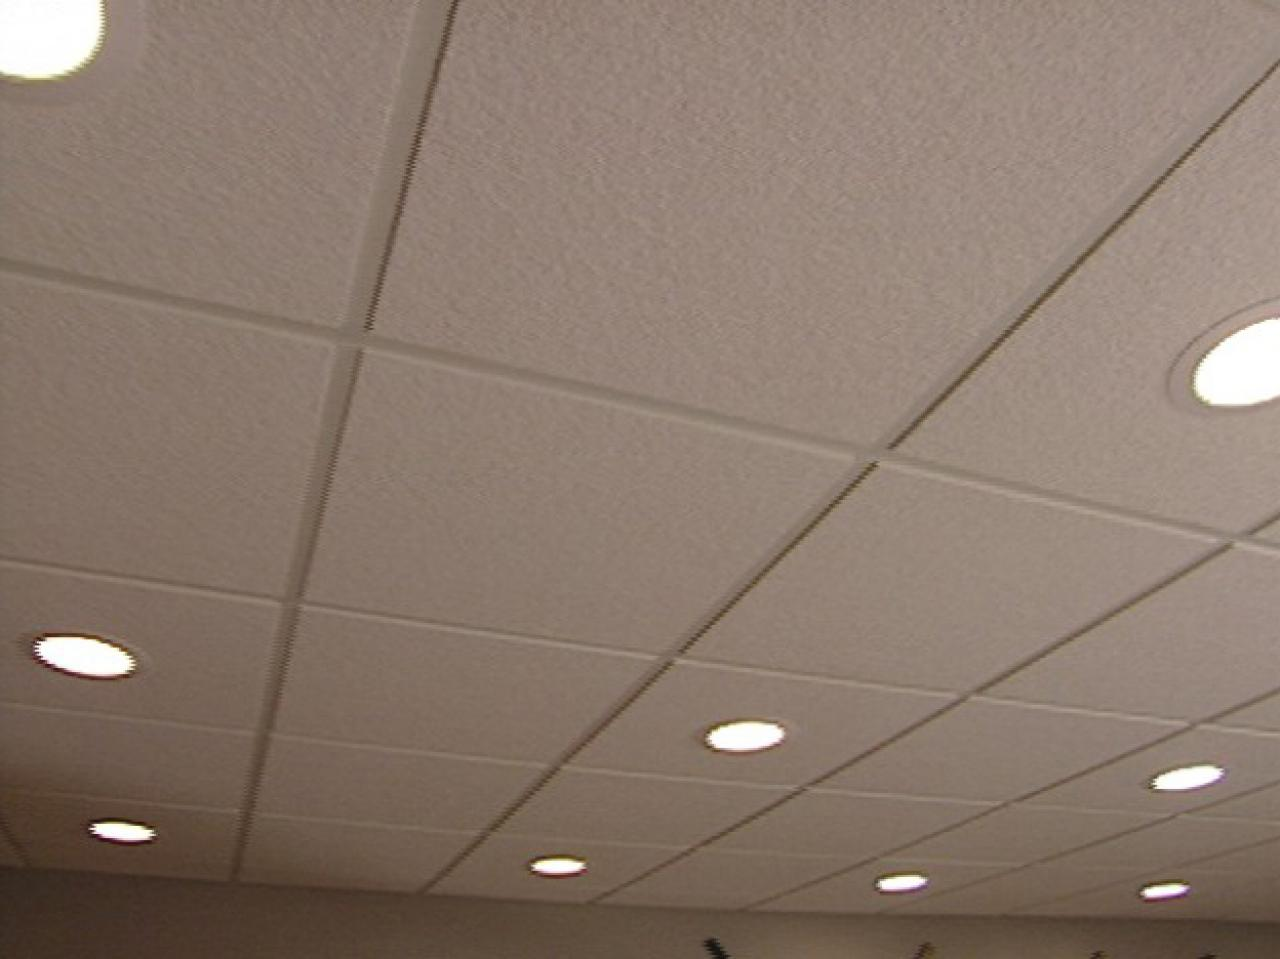 Ceiling grid lighting democraciaejustica suspended ceiling grid light panels enhancing the look saveenlarge aloadofball Image collections